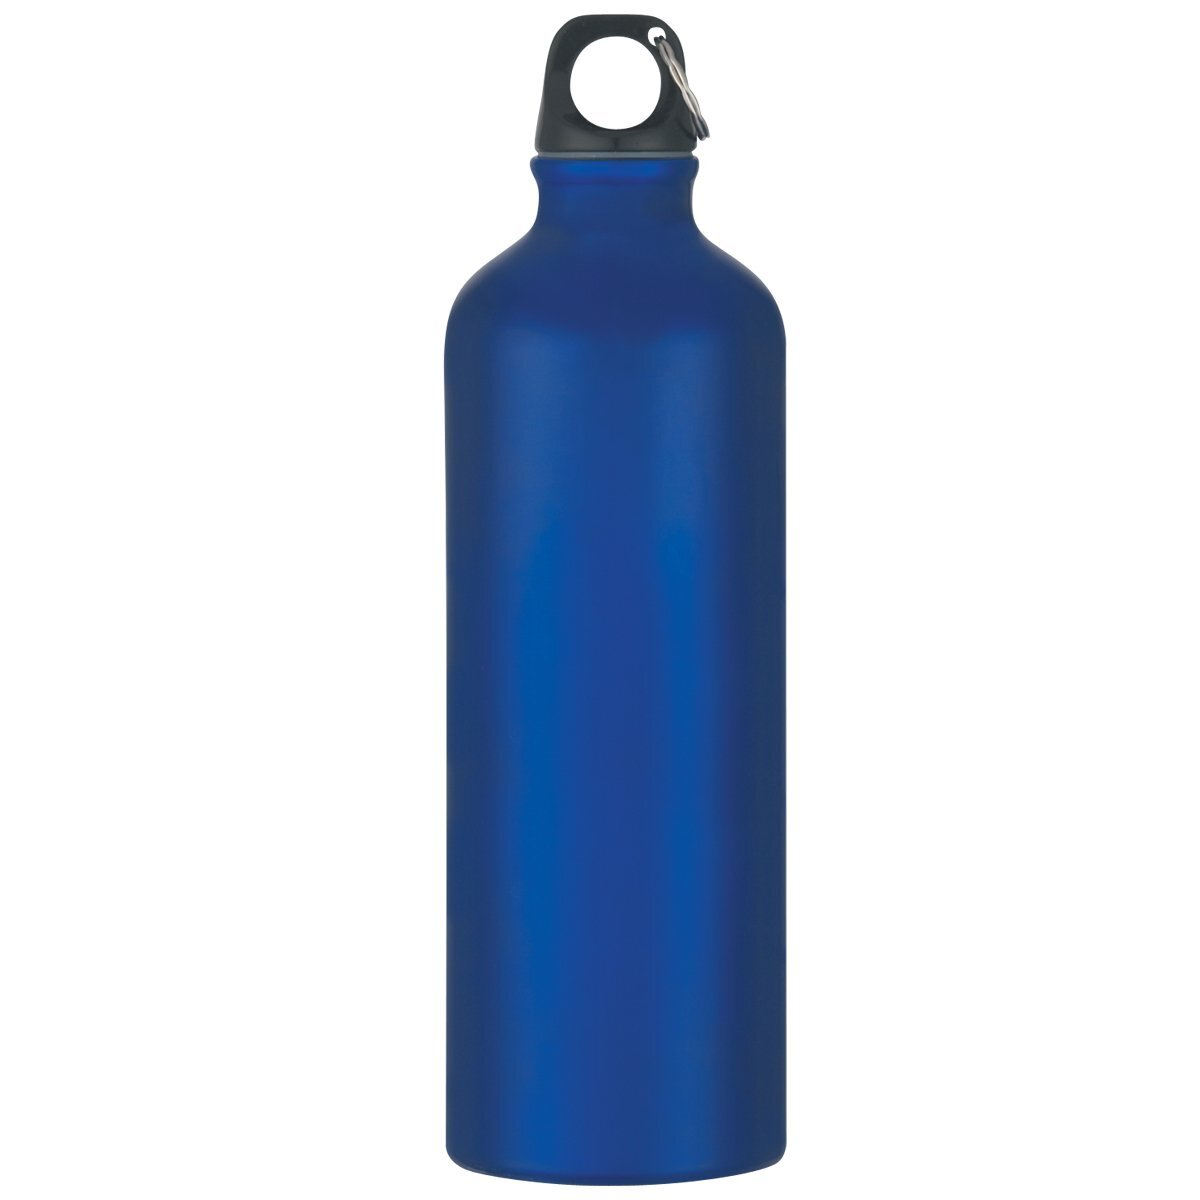 Aluminum Metallic Bike Bottle, 25oz.